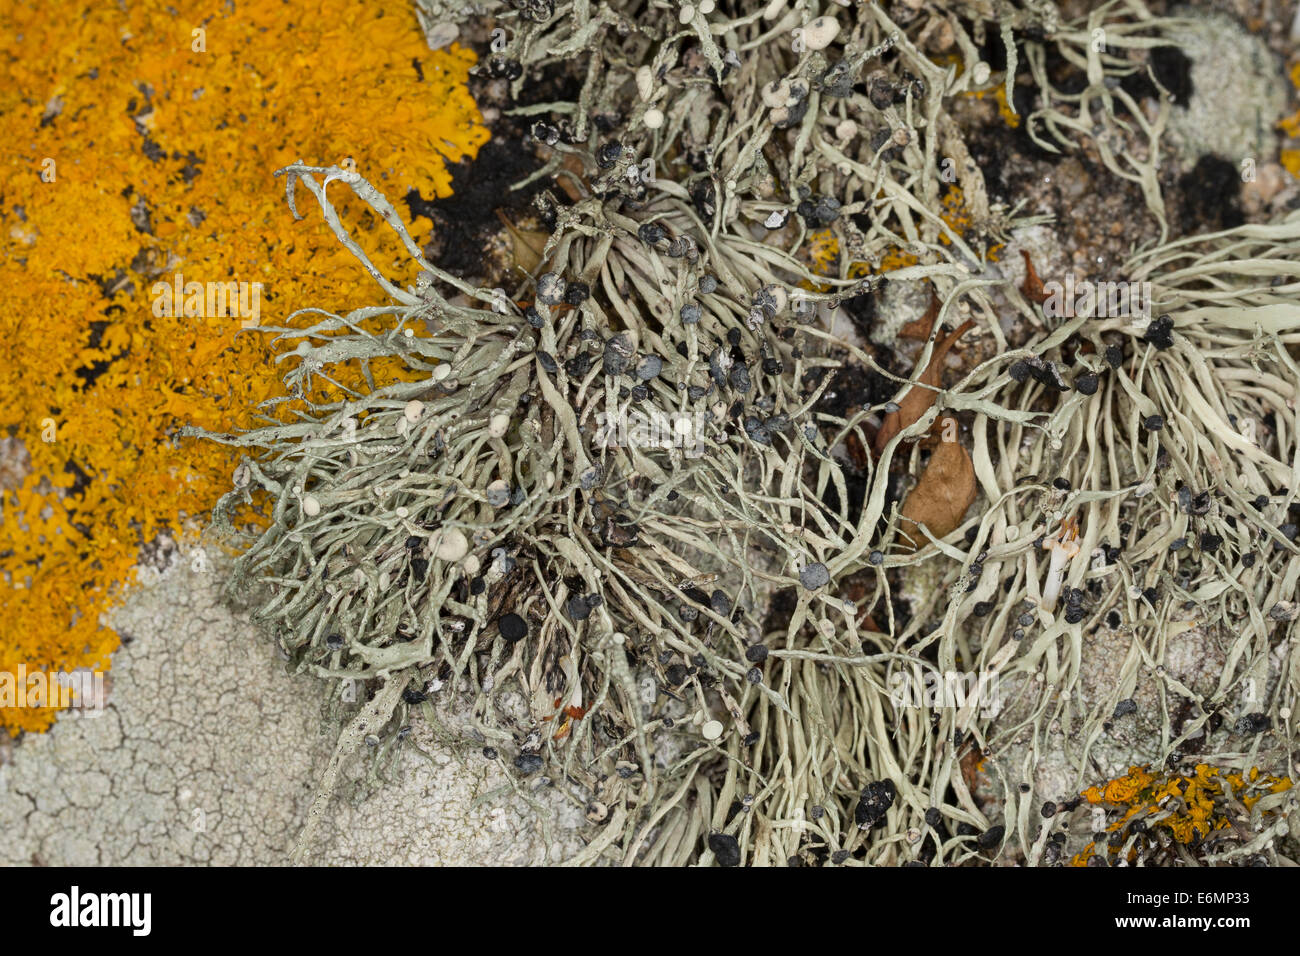 Sea Ivory Lichen on rocks and stone walls on coastland, Grüngraue Astflechte, Strauchflechte, Küstenfelsen, - Stock Image